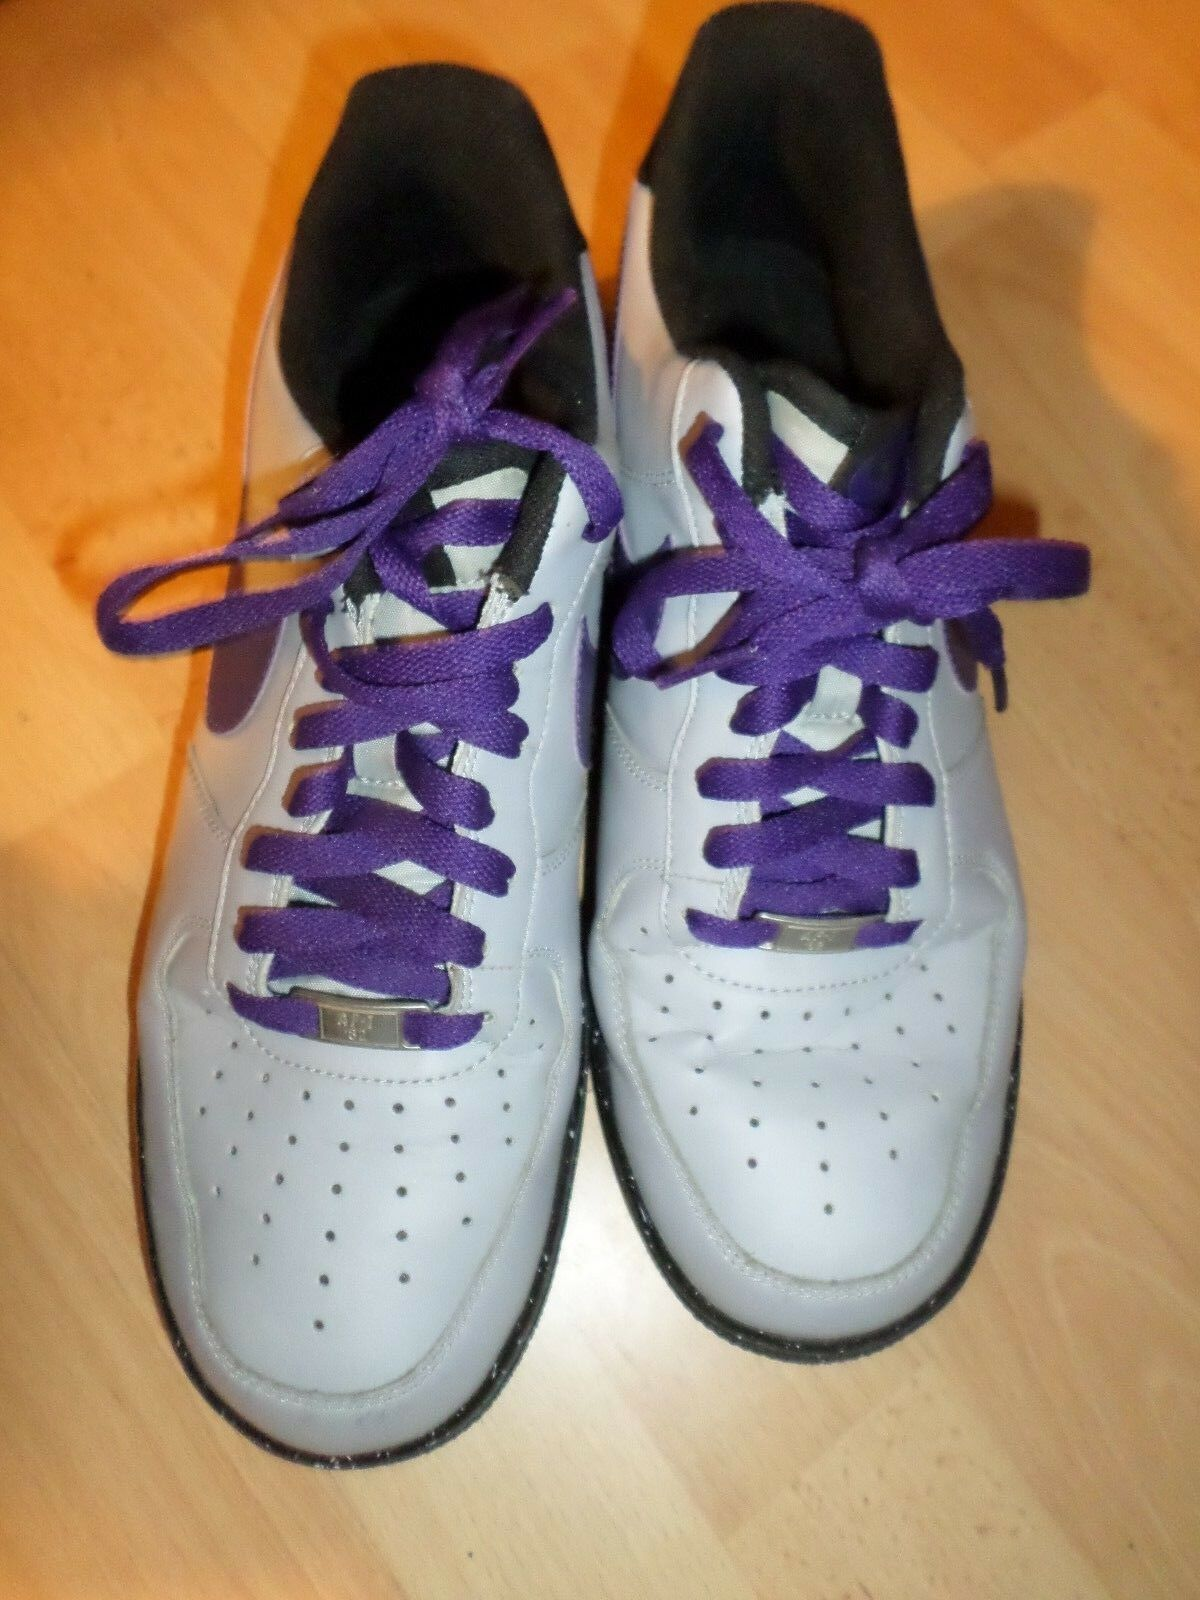 The most popular shoes for men and women Nike Air Force 1 AF1 Low WOLF GREY/Court Purple Price reductionSz 10*